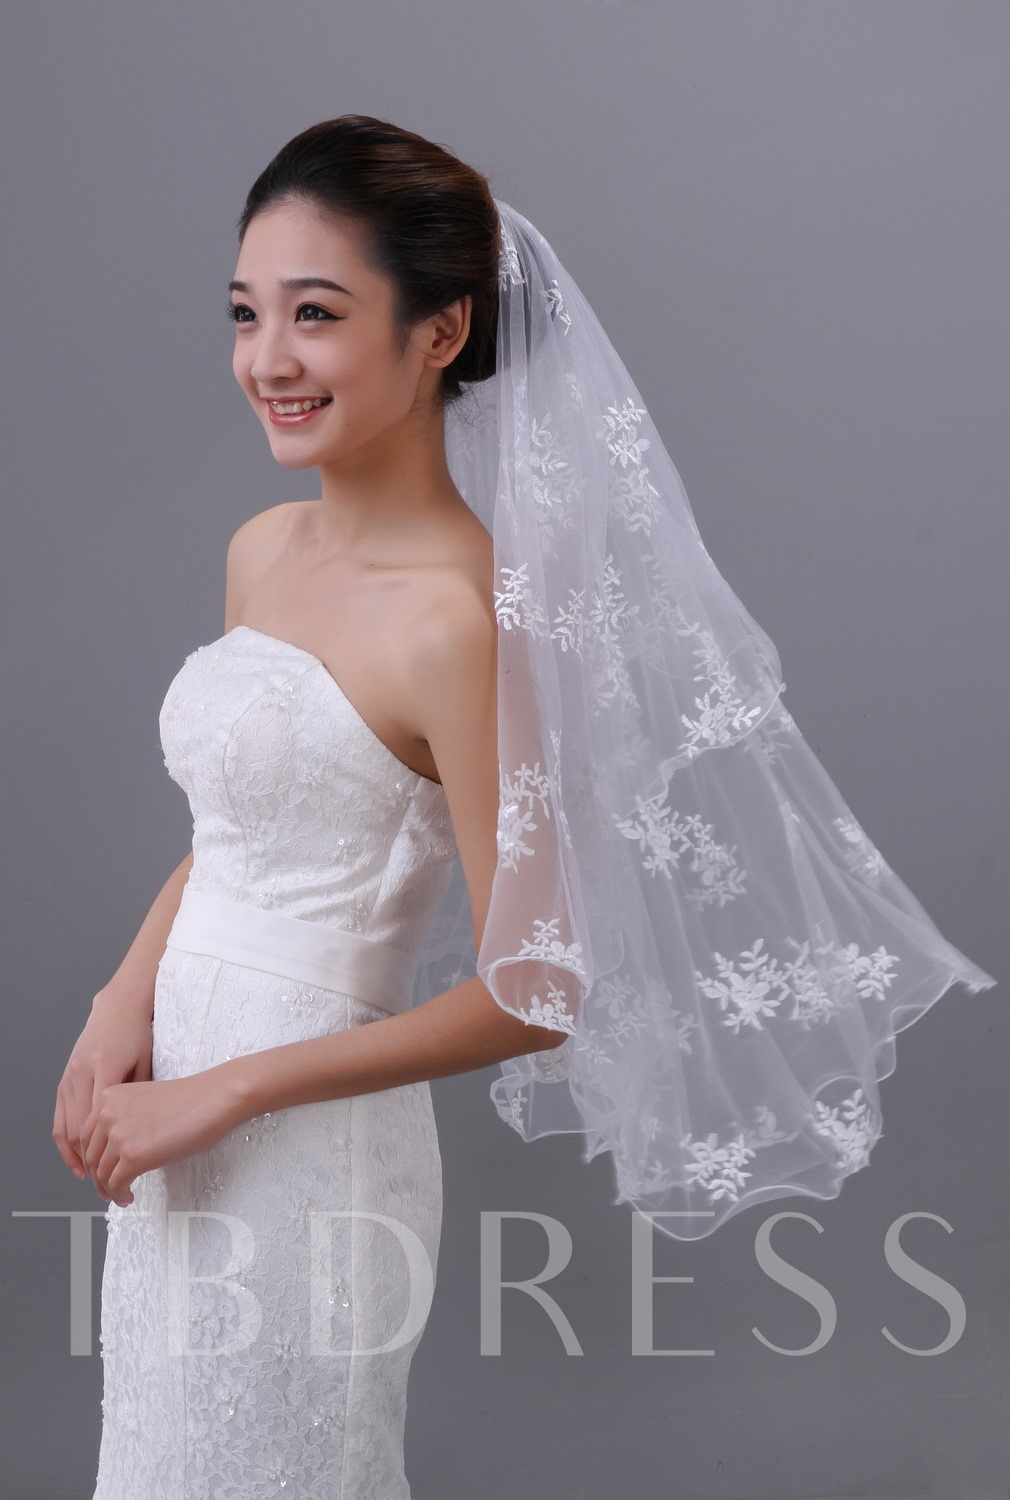 Elbow Flowers Lace Wedding Veil